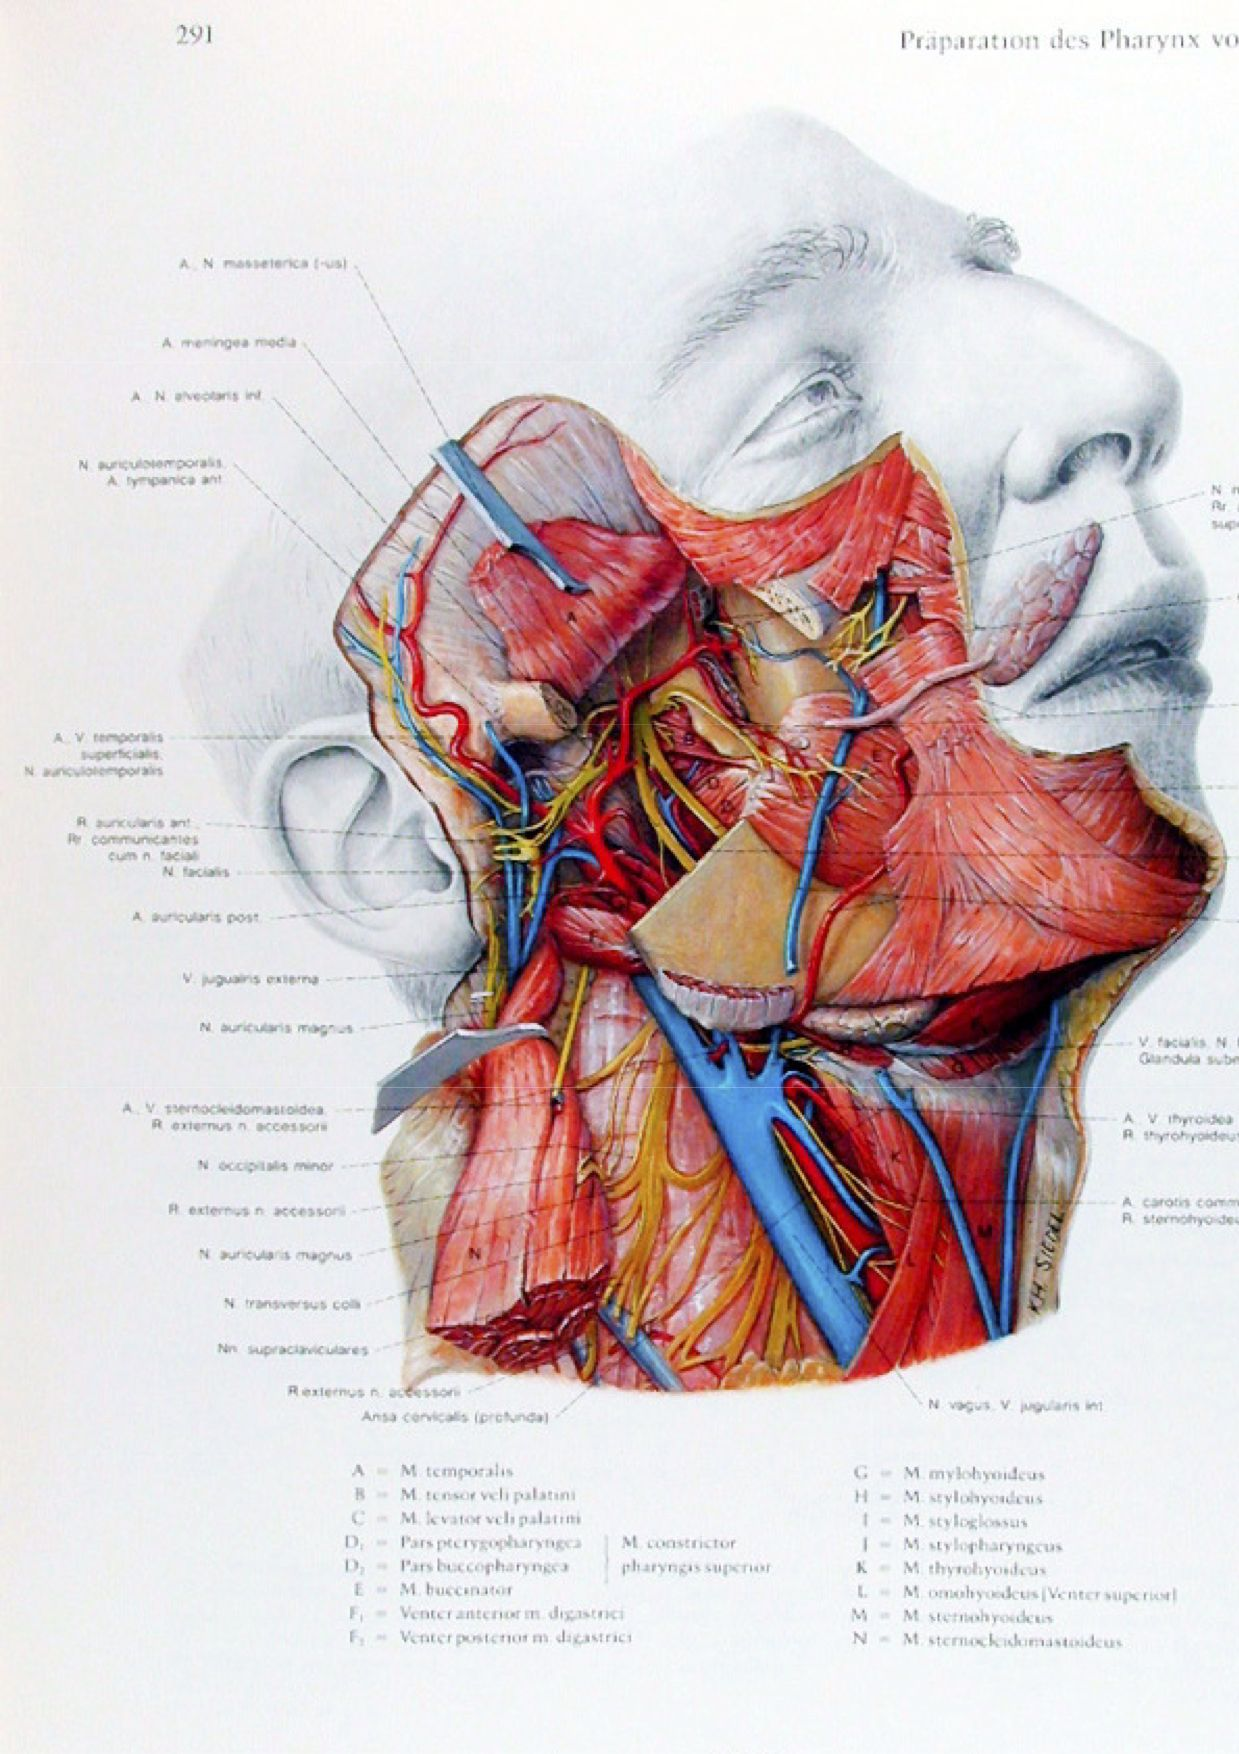 Eduard Pernkopf Atlas Head And Neck Anatomy Facial Anatomy